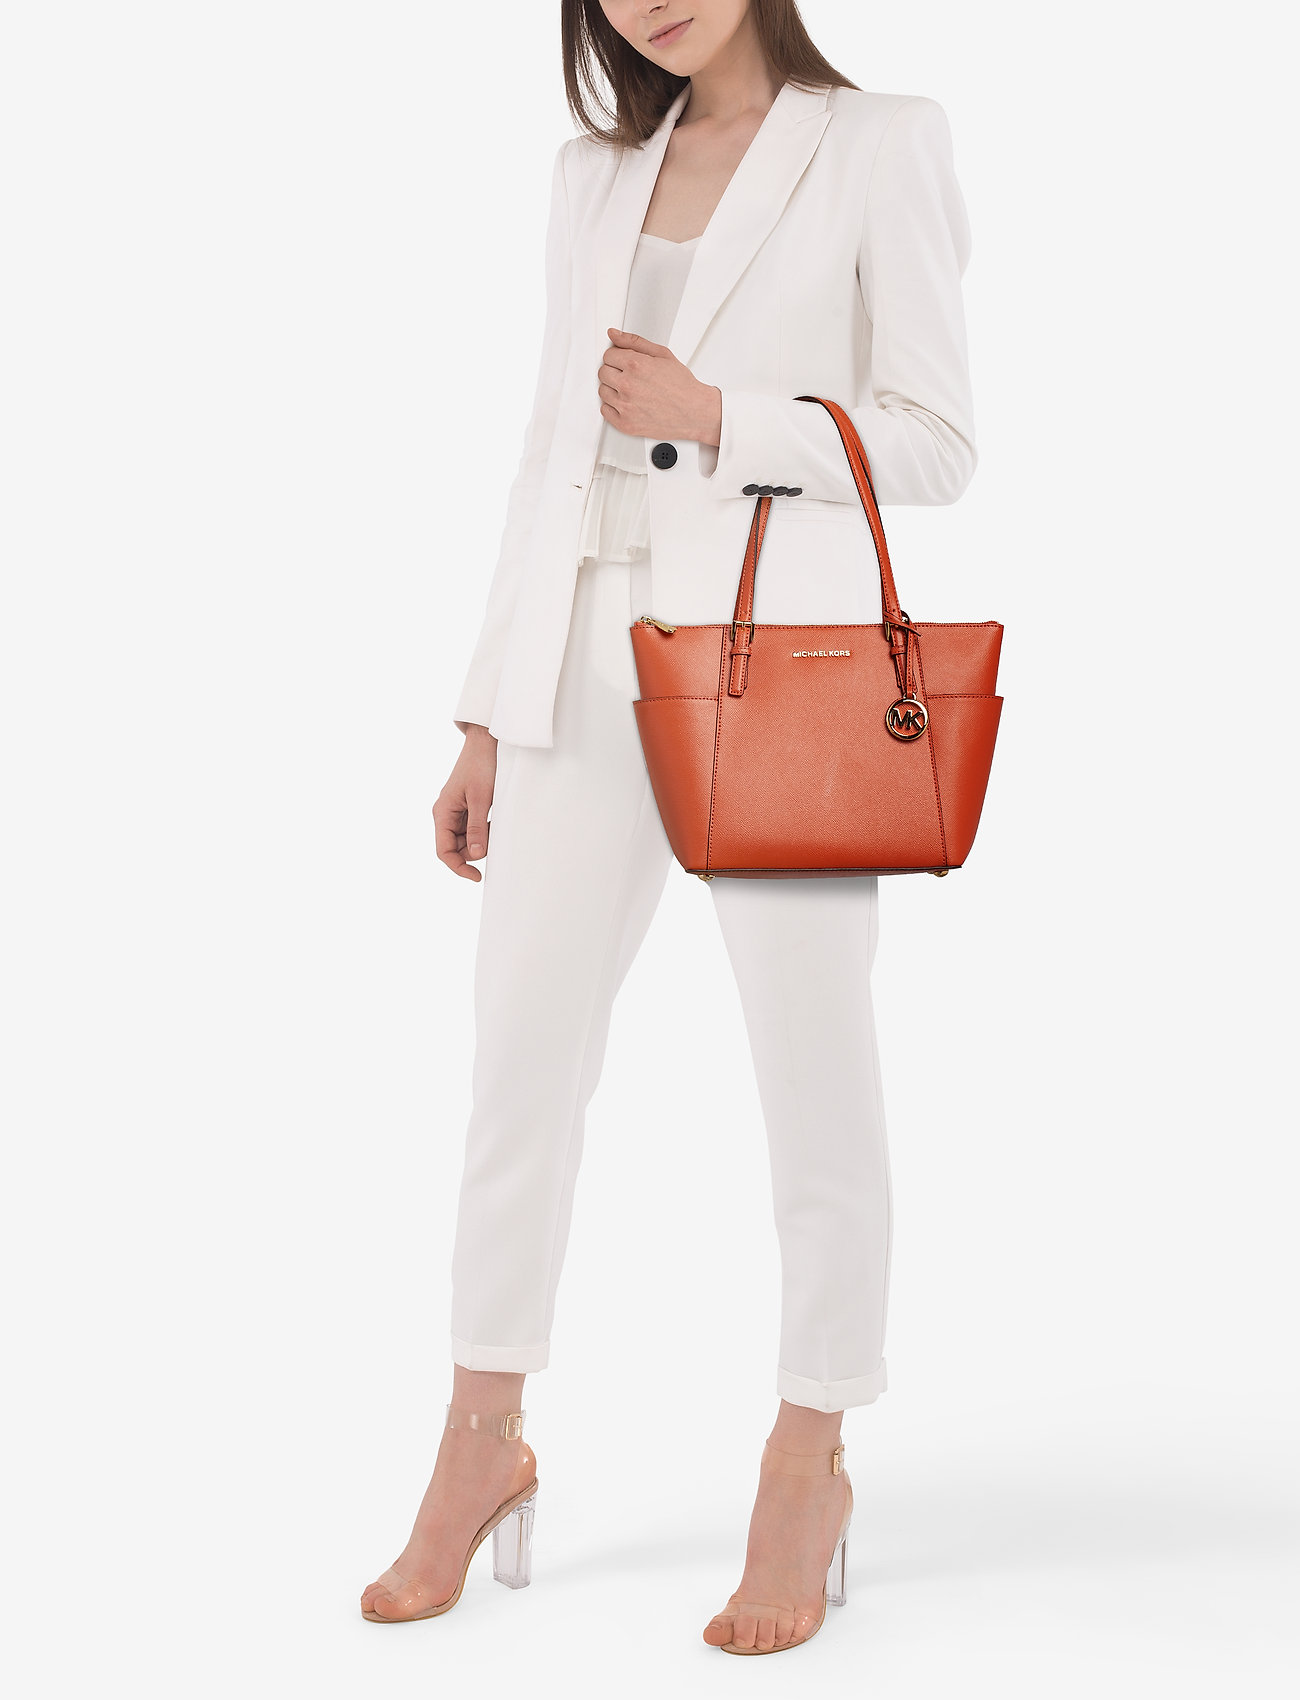 Michael Kors Bags JET SET ITEM EW TZ TOTE - BURNT ORANGE